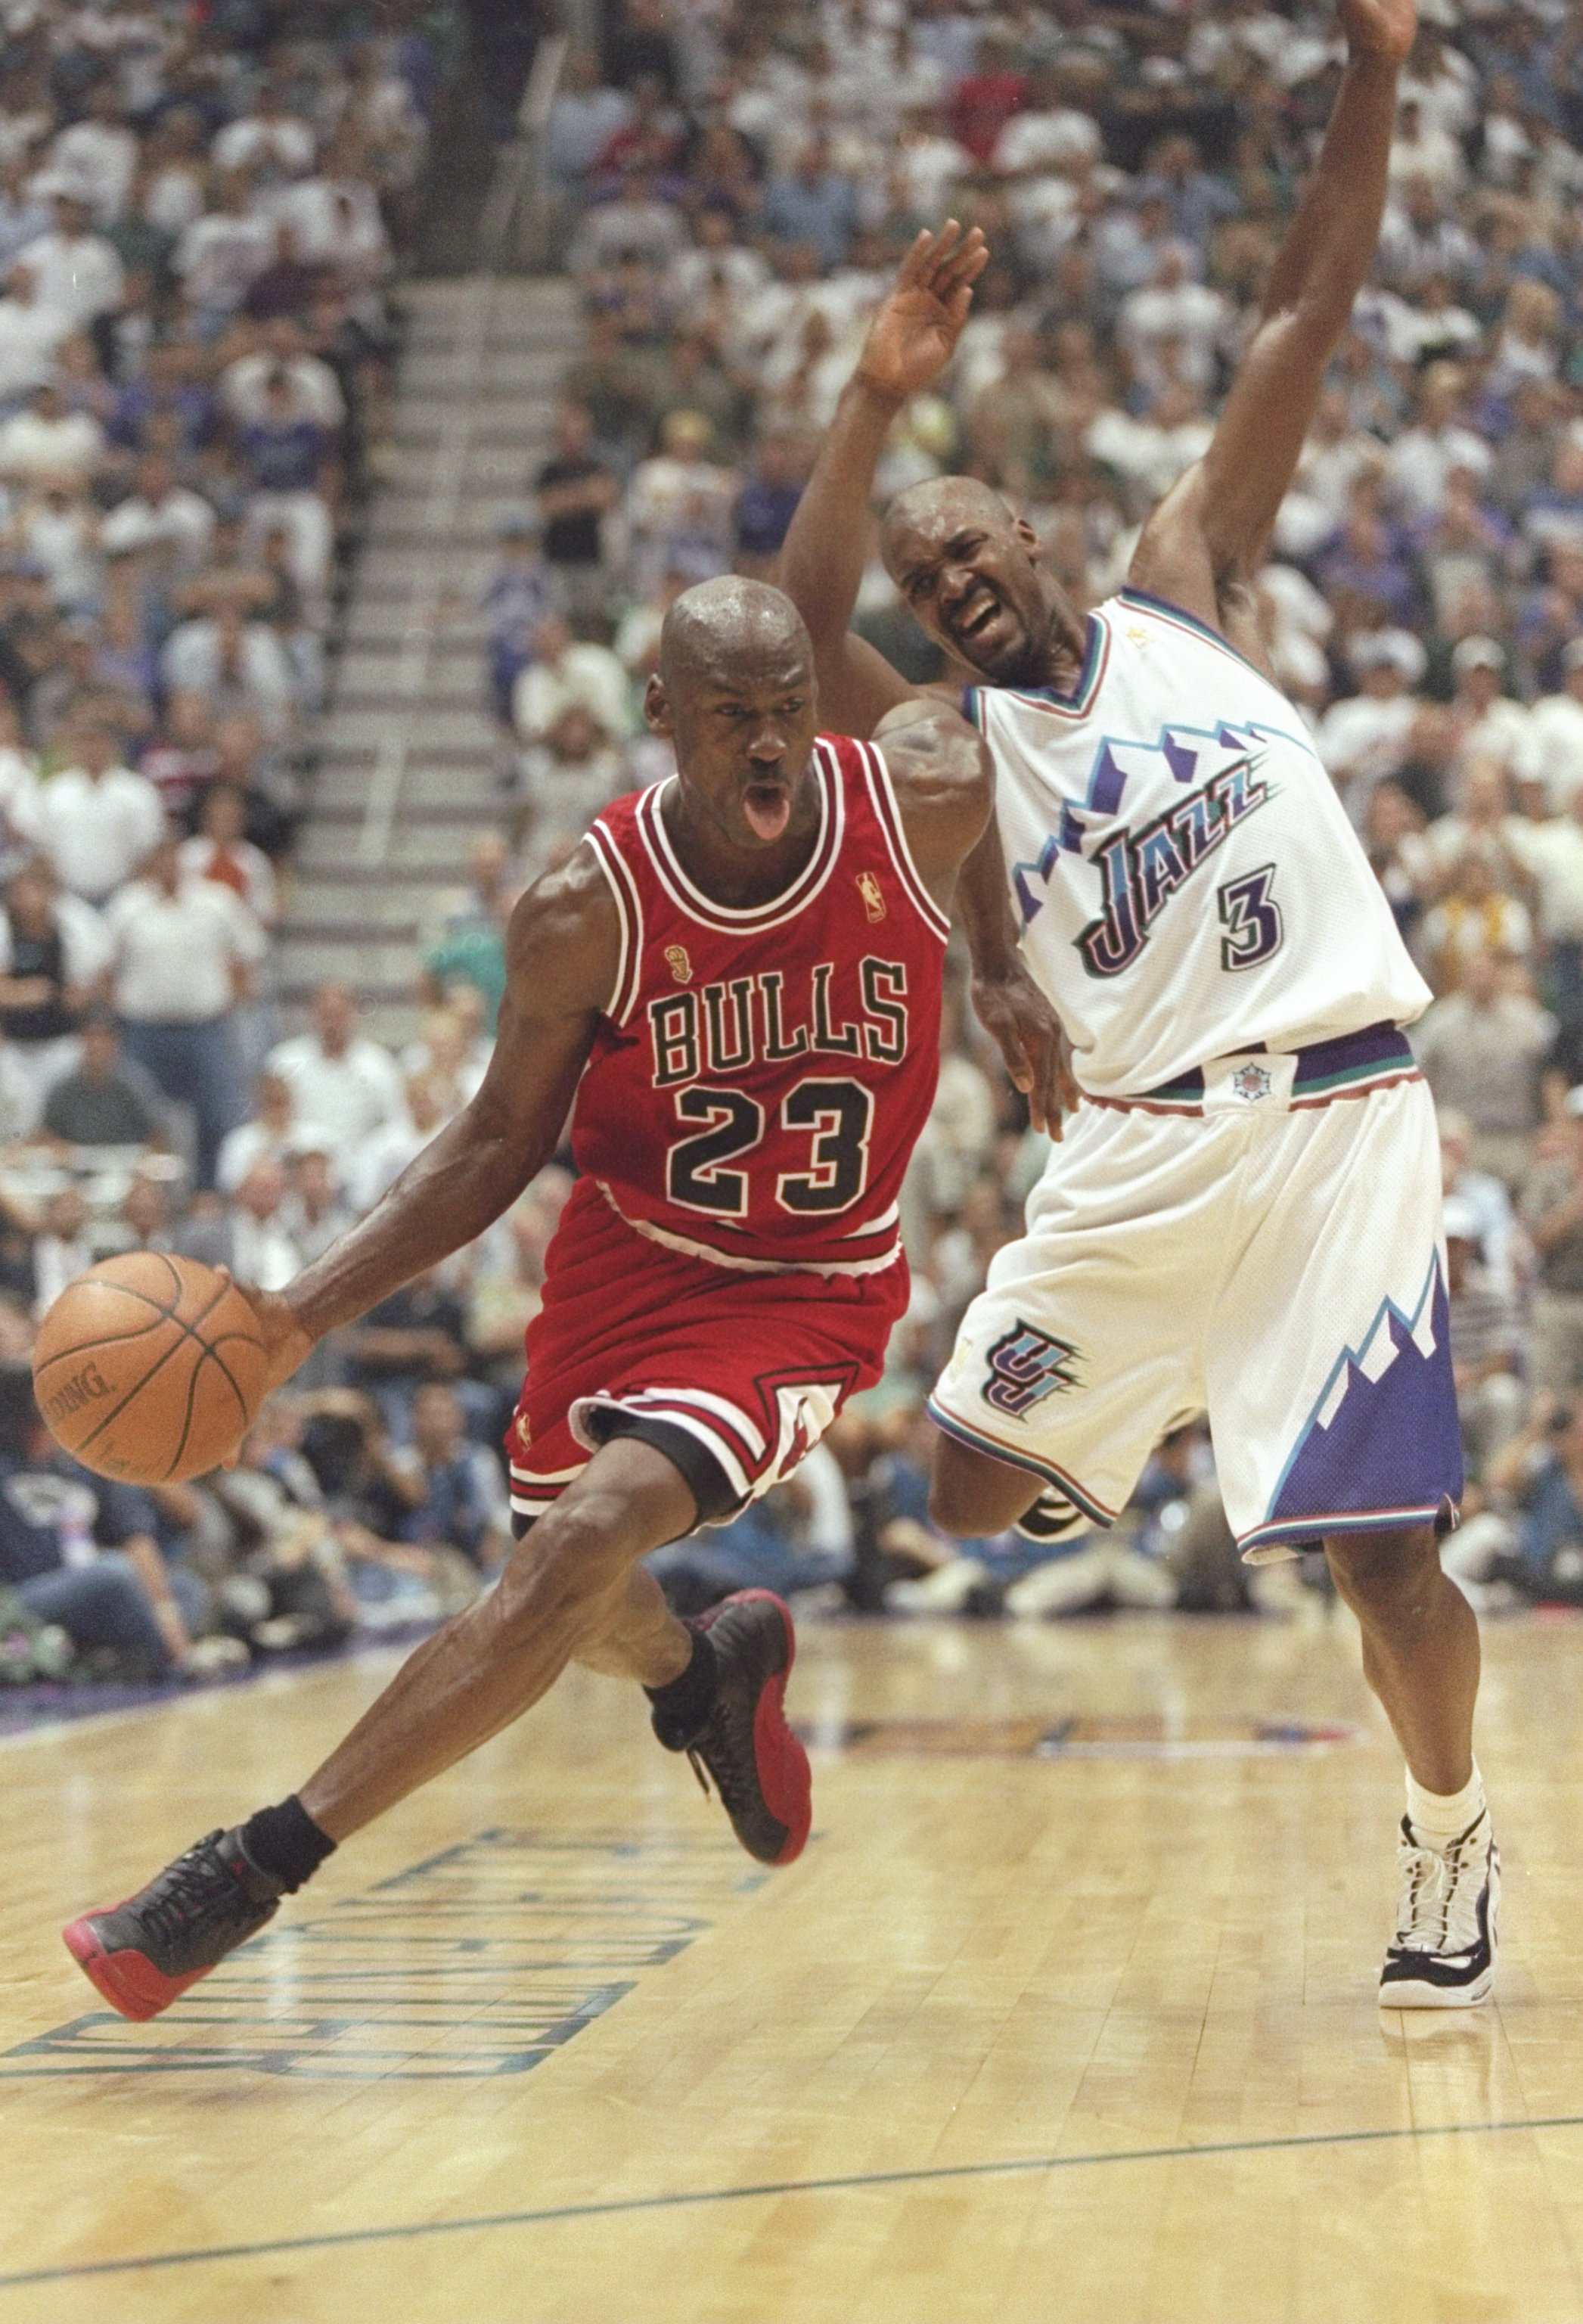 11 Jun 1997: Michael Jordan of the Chicago Bulls drives around Bryon Russell #3 of the Jazz during the Bulls 90-88 win over the Utah Jazz in Game 5 of the NBA Finals at the Delta Center in Salt Lake City, Utah.